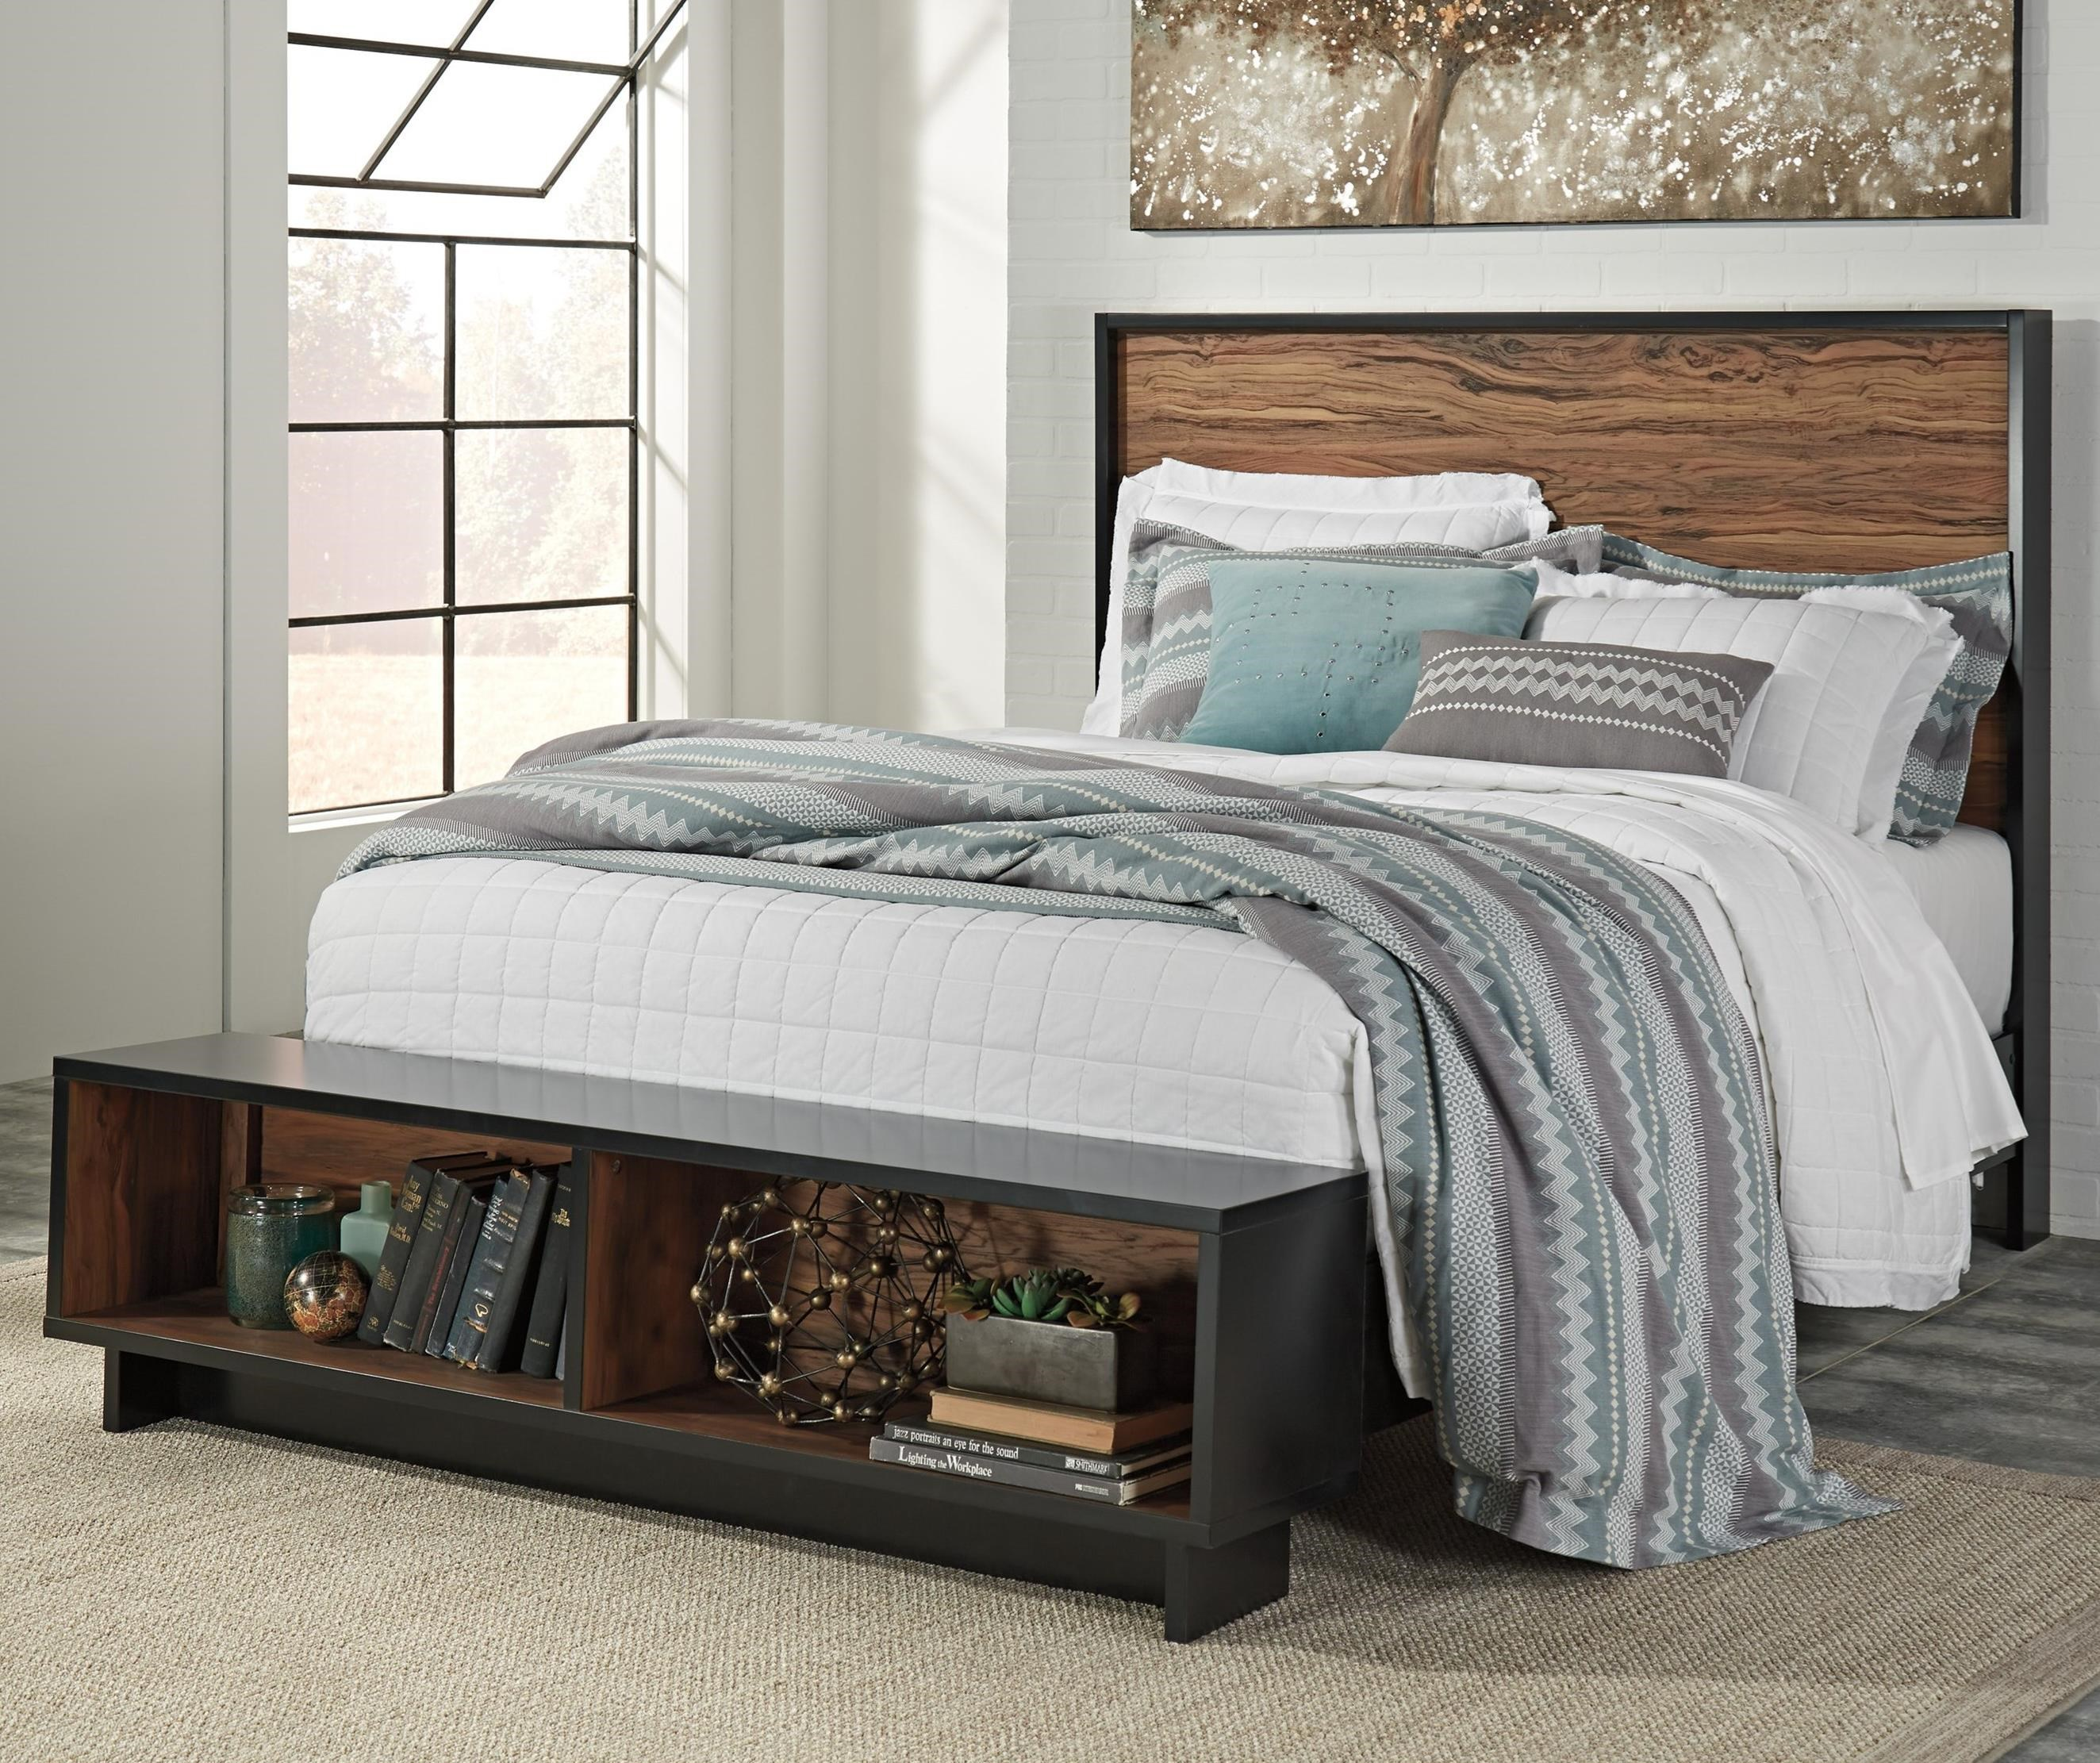 Signature design by ashley stavani queen platform bed w for Queen footboard